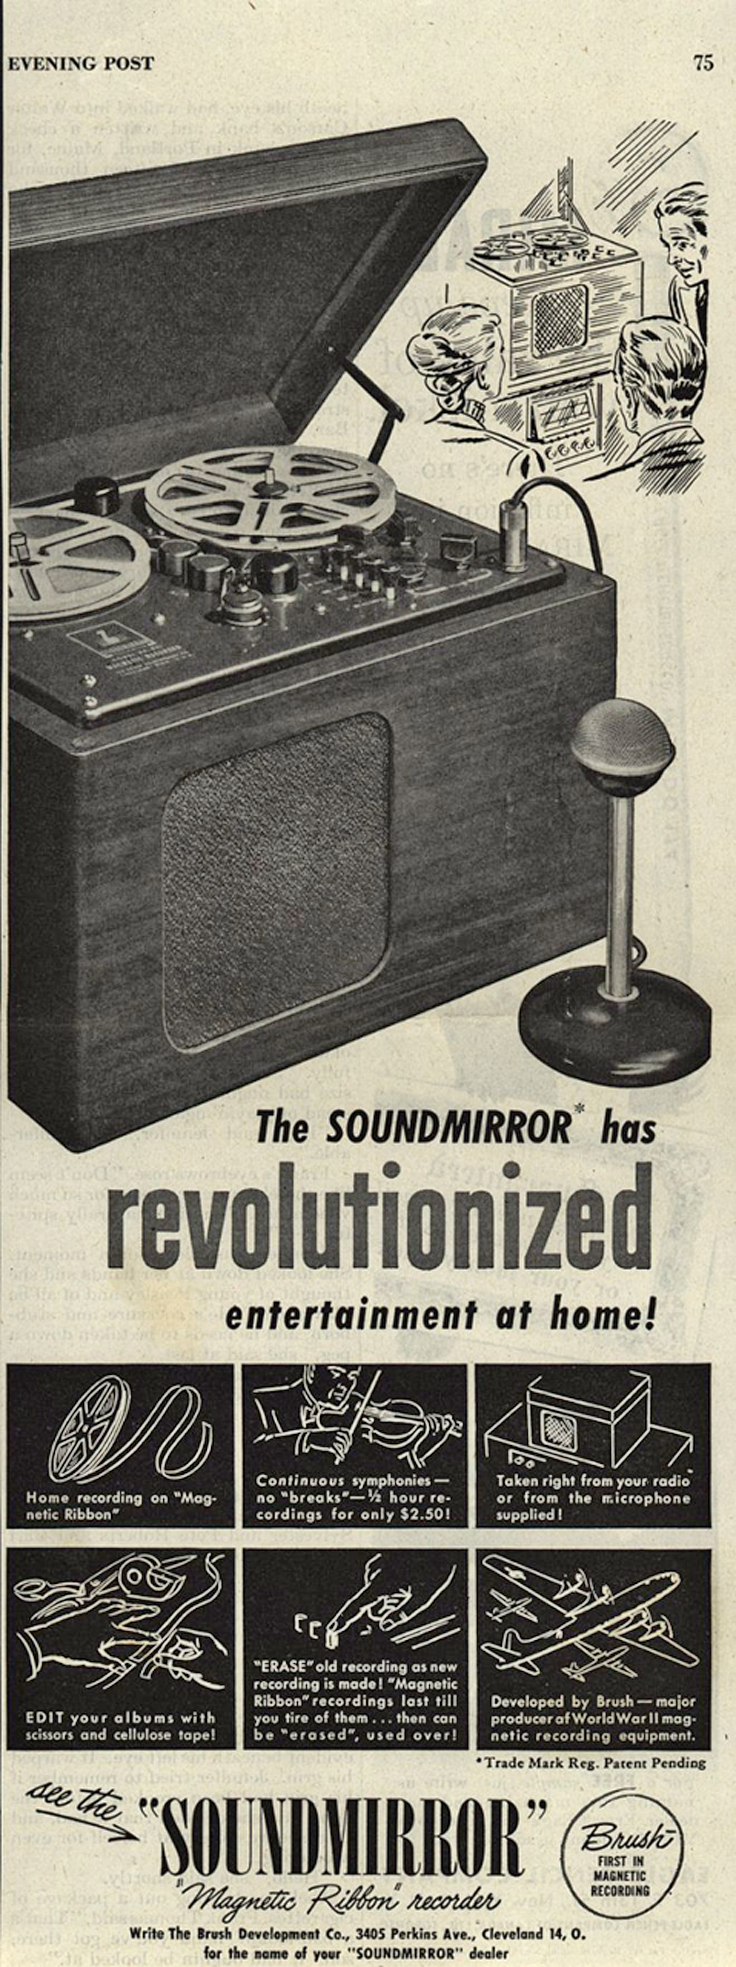 1946 ad for the Brush Soundmirror  in Reel2ReelTexas.com's vintage recording collection